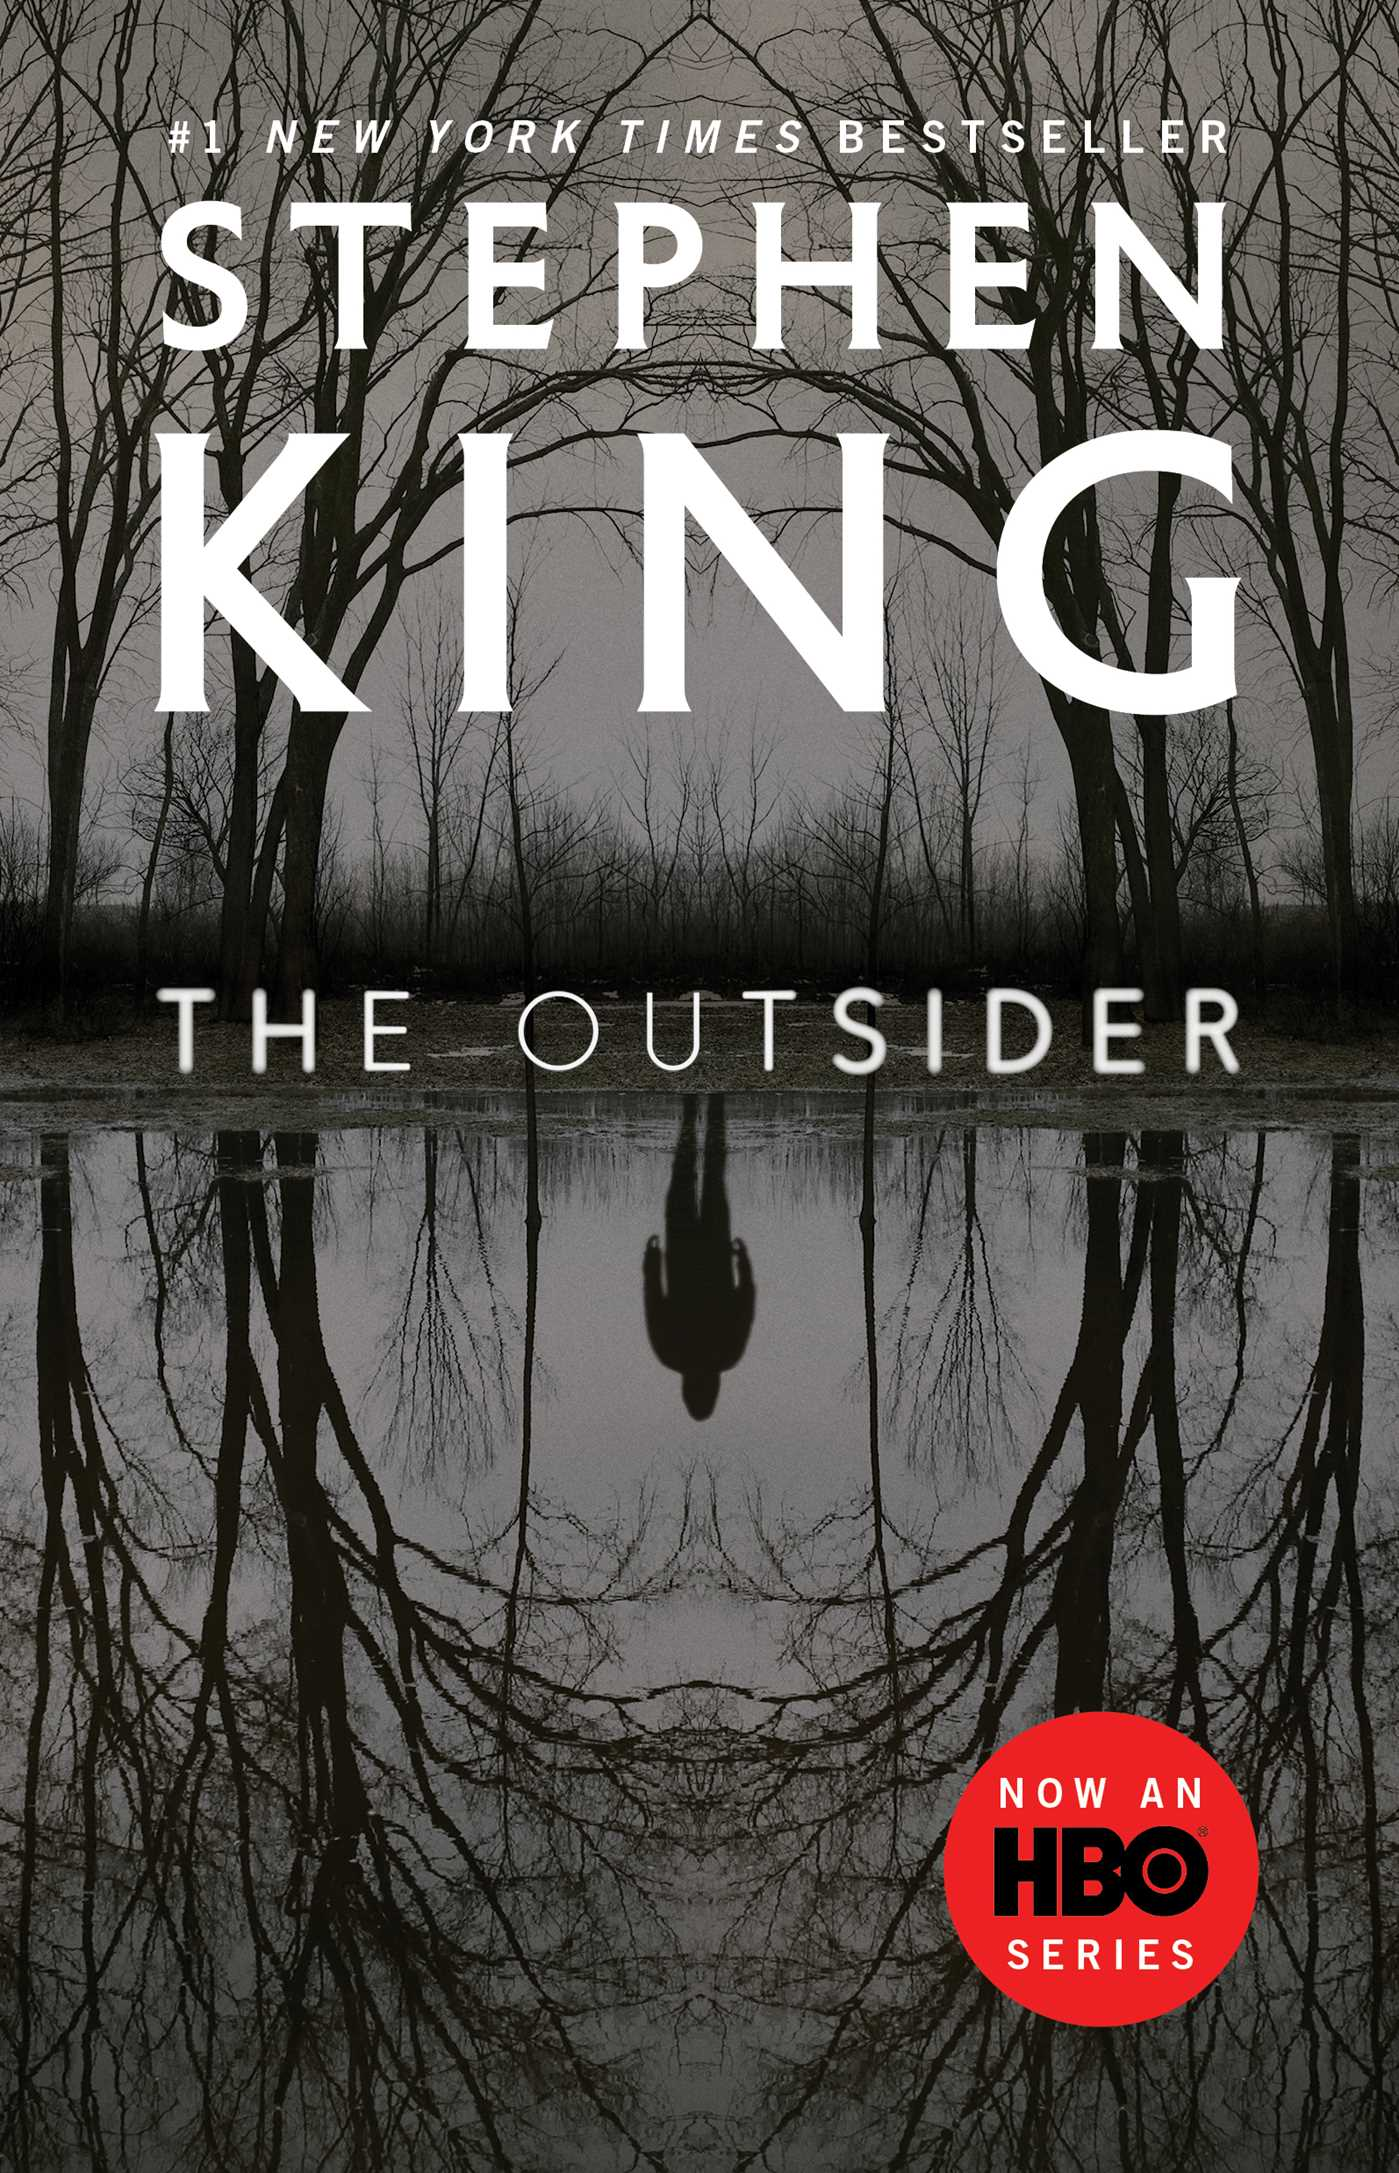 The outsider 9781501181016 hr